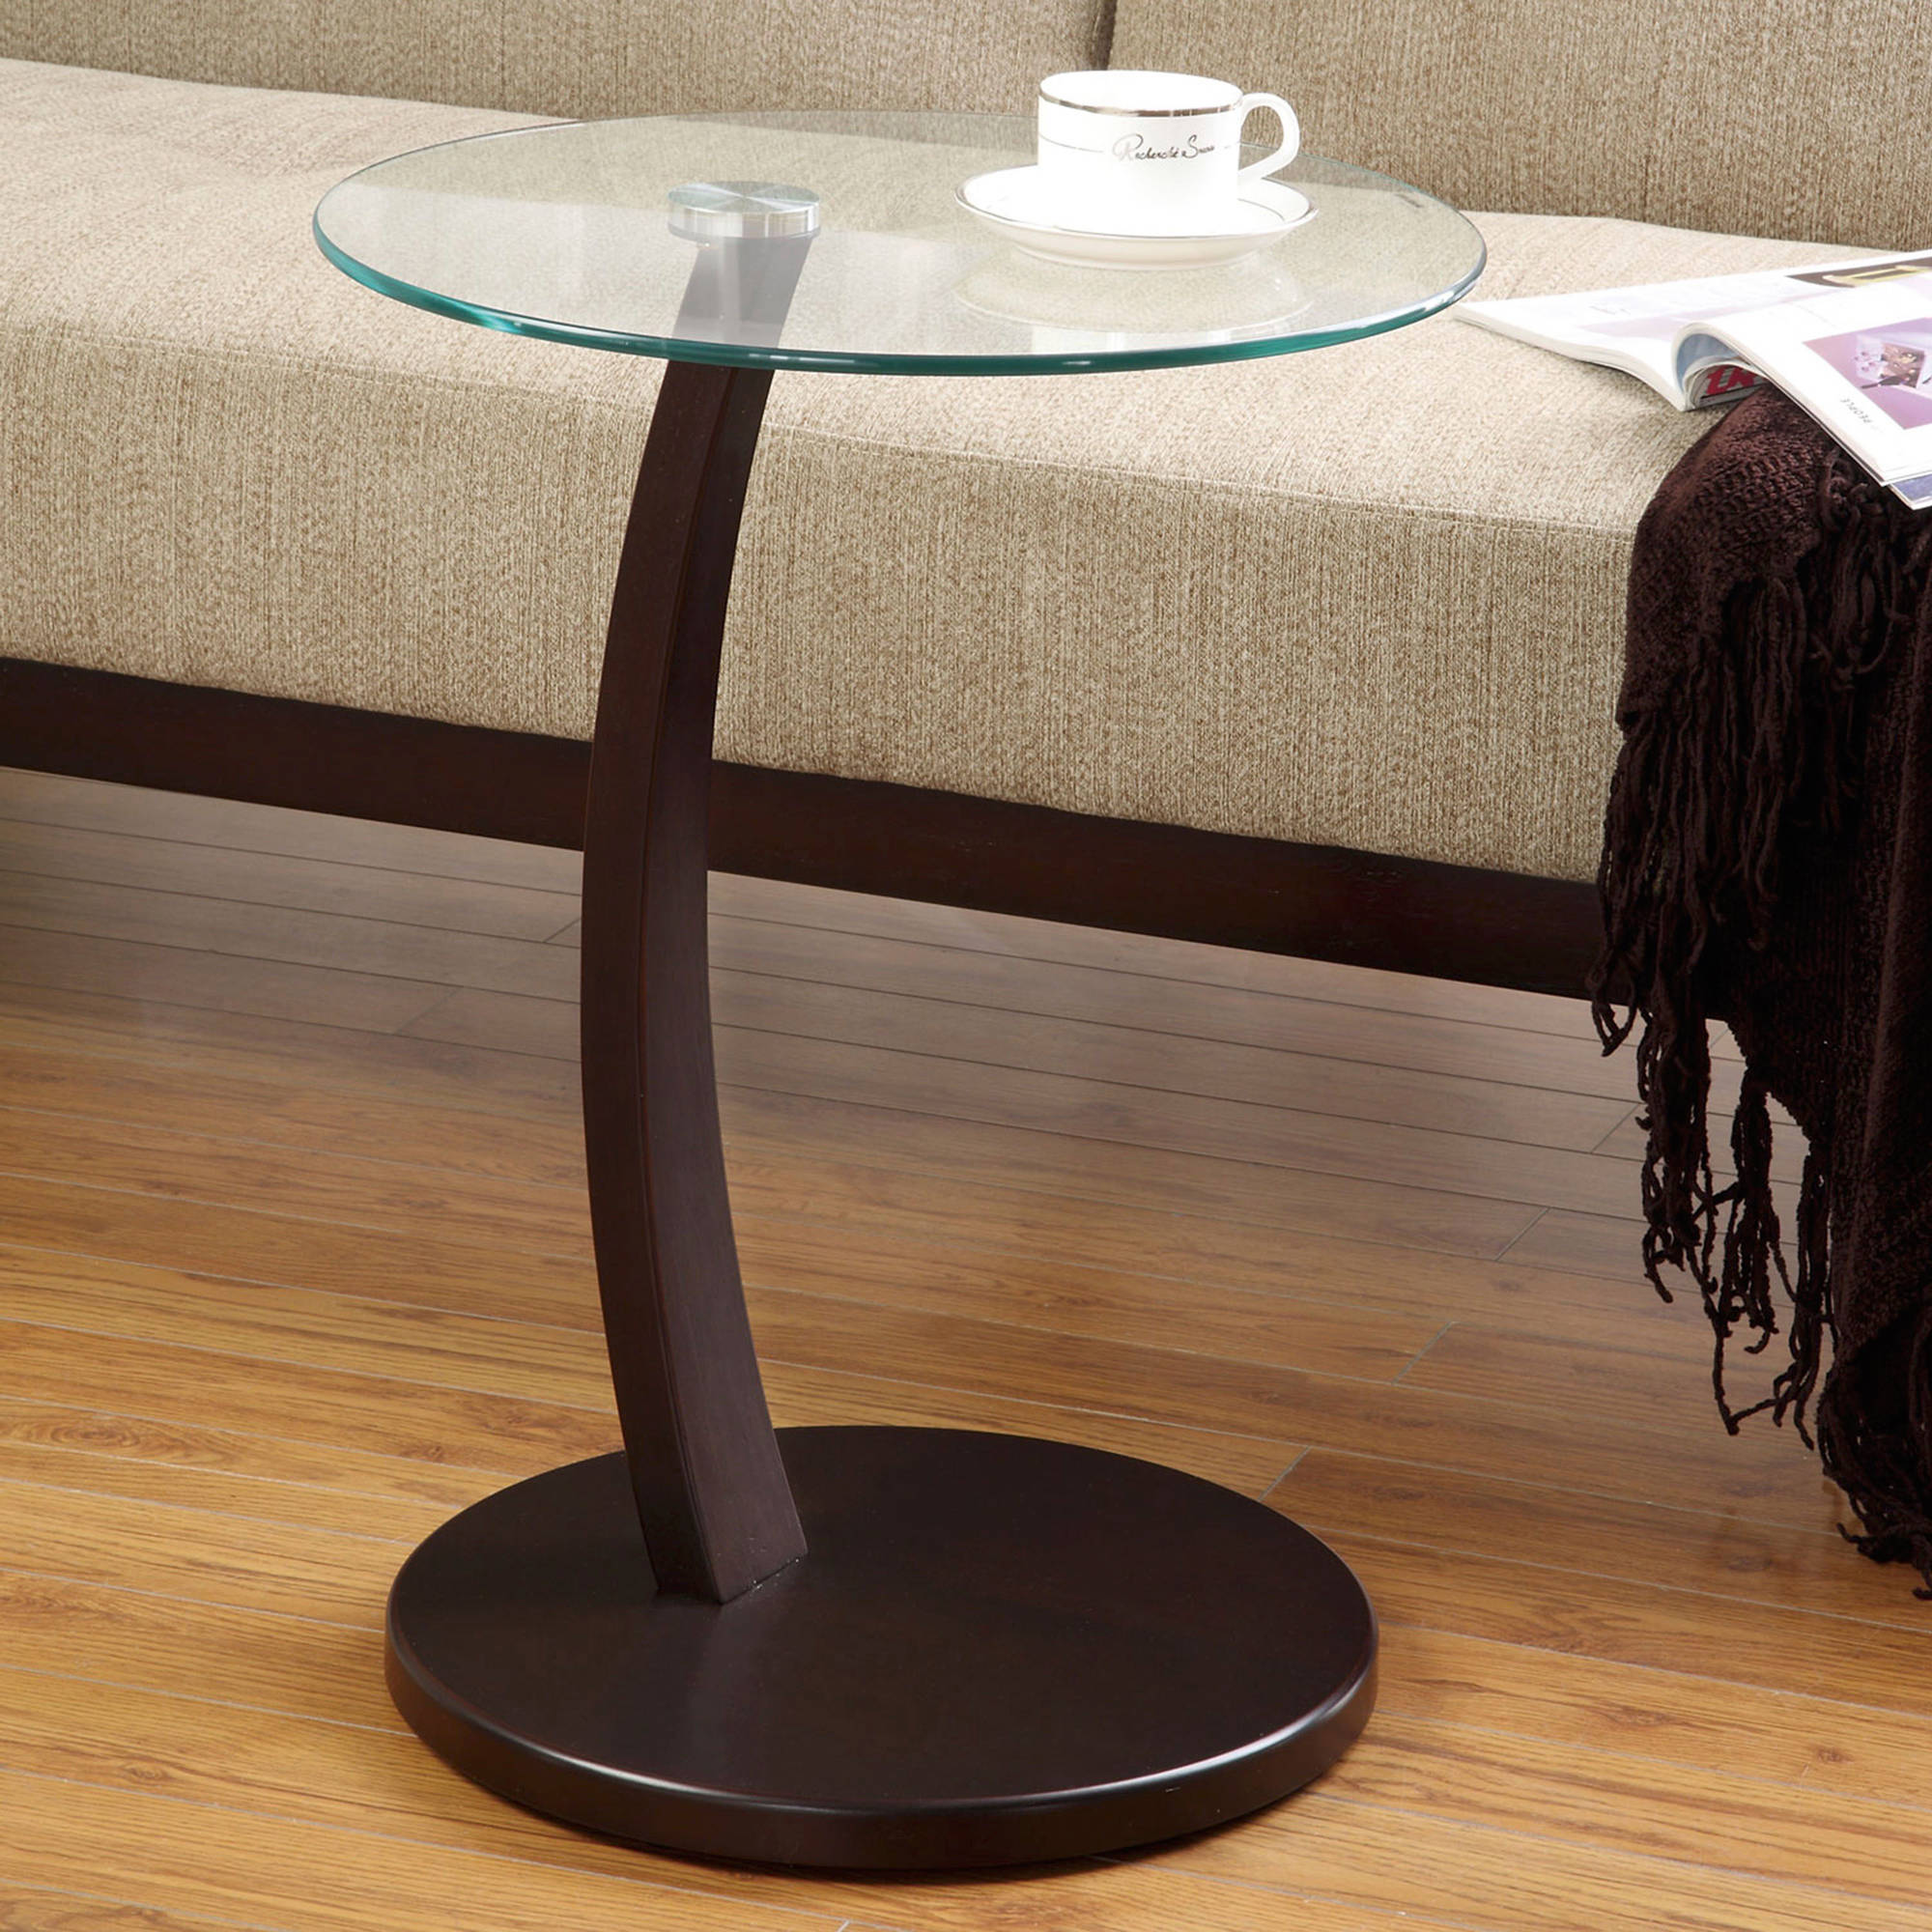 Coaster Round Accent Table, Cappuccino Finish with Glass Top by Coaster Company